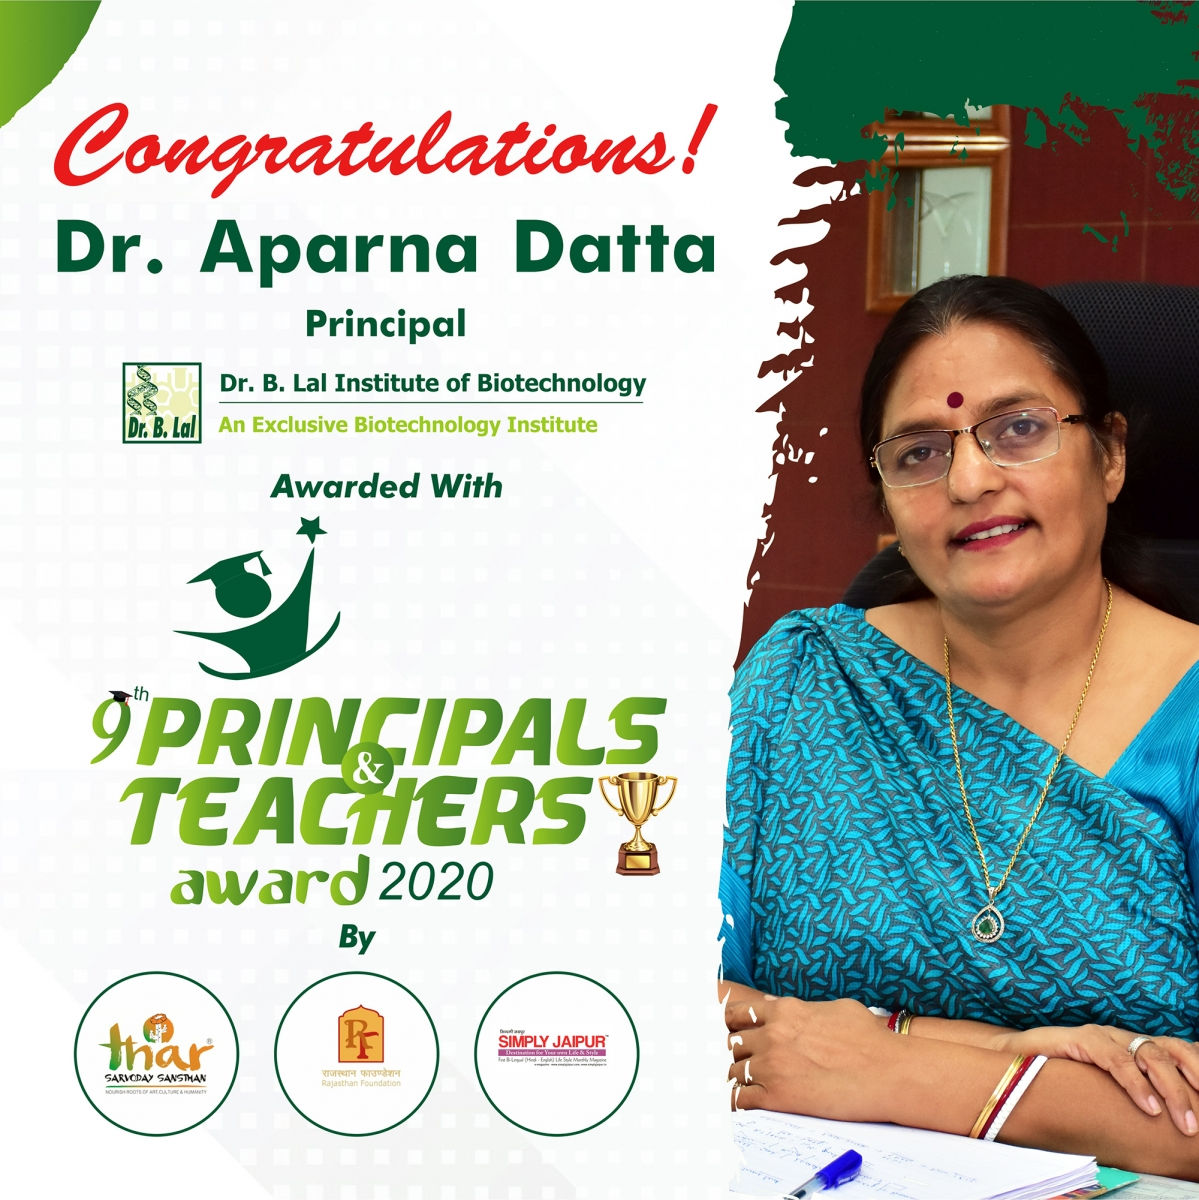 Dr. Aparna Datta, Principal, Dr. B. Lal Institute of Biotechnology | 9th Principals & Teachers Award 2020